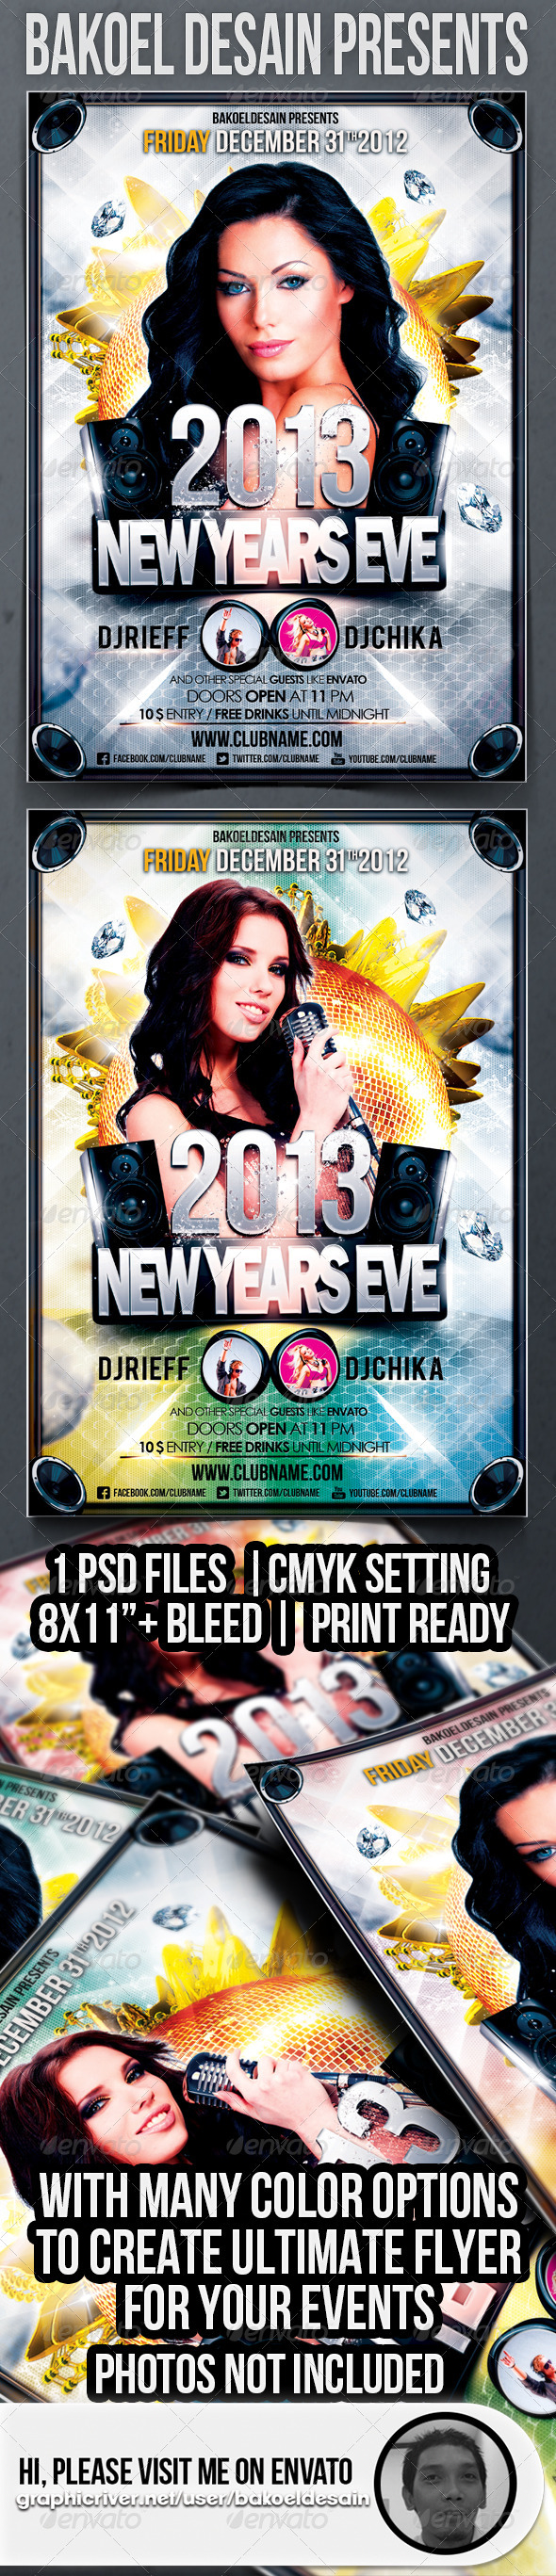 GraphicRiver New Years Eve 2013 Party Flyer 3545382